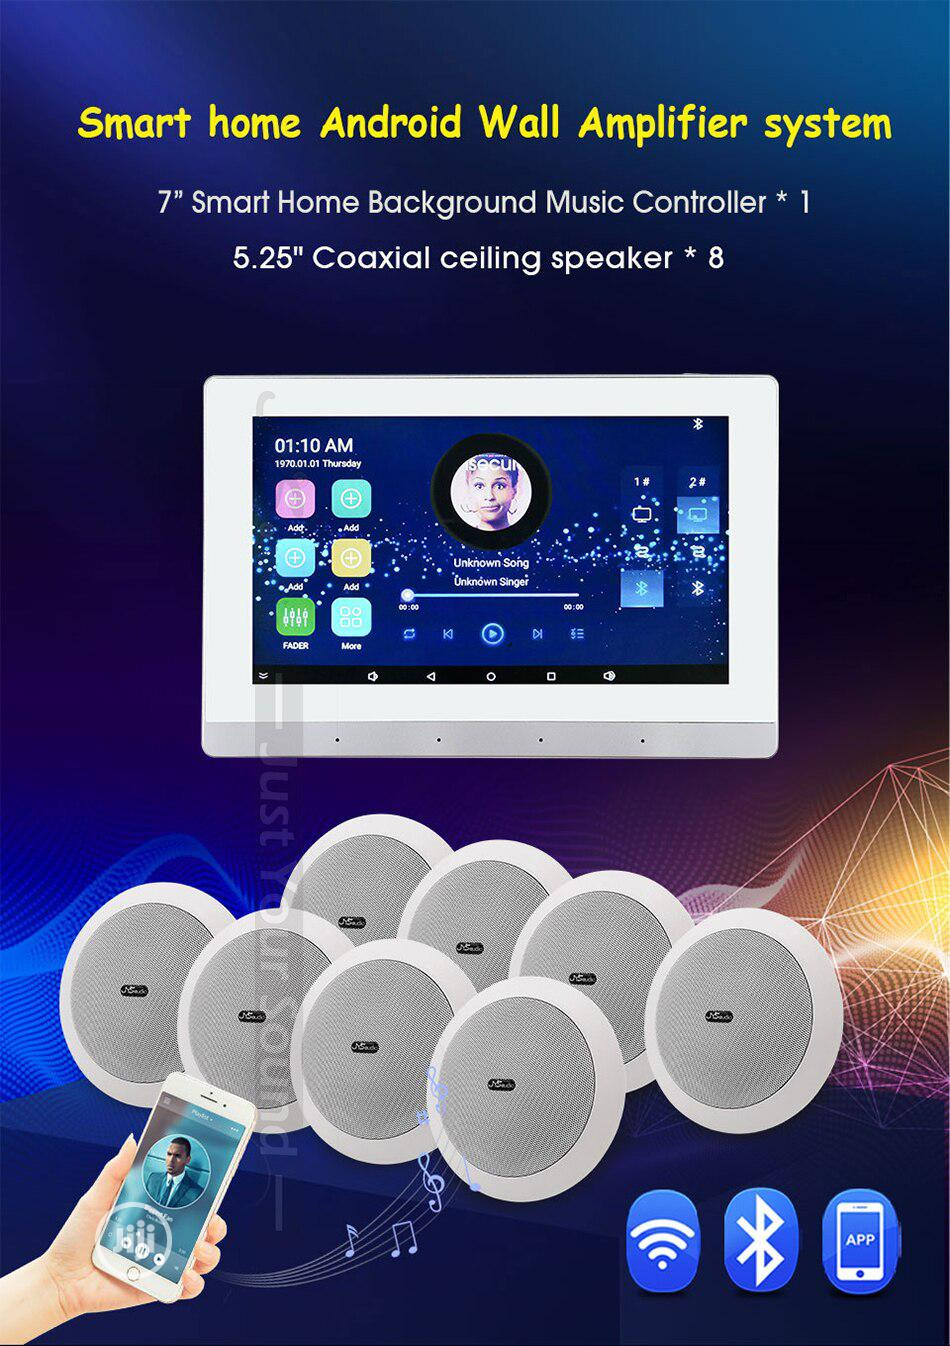 Android Bluetooth Wall Amp With 8 Ceiling Speakers